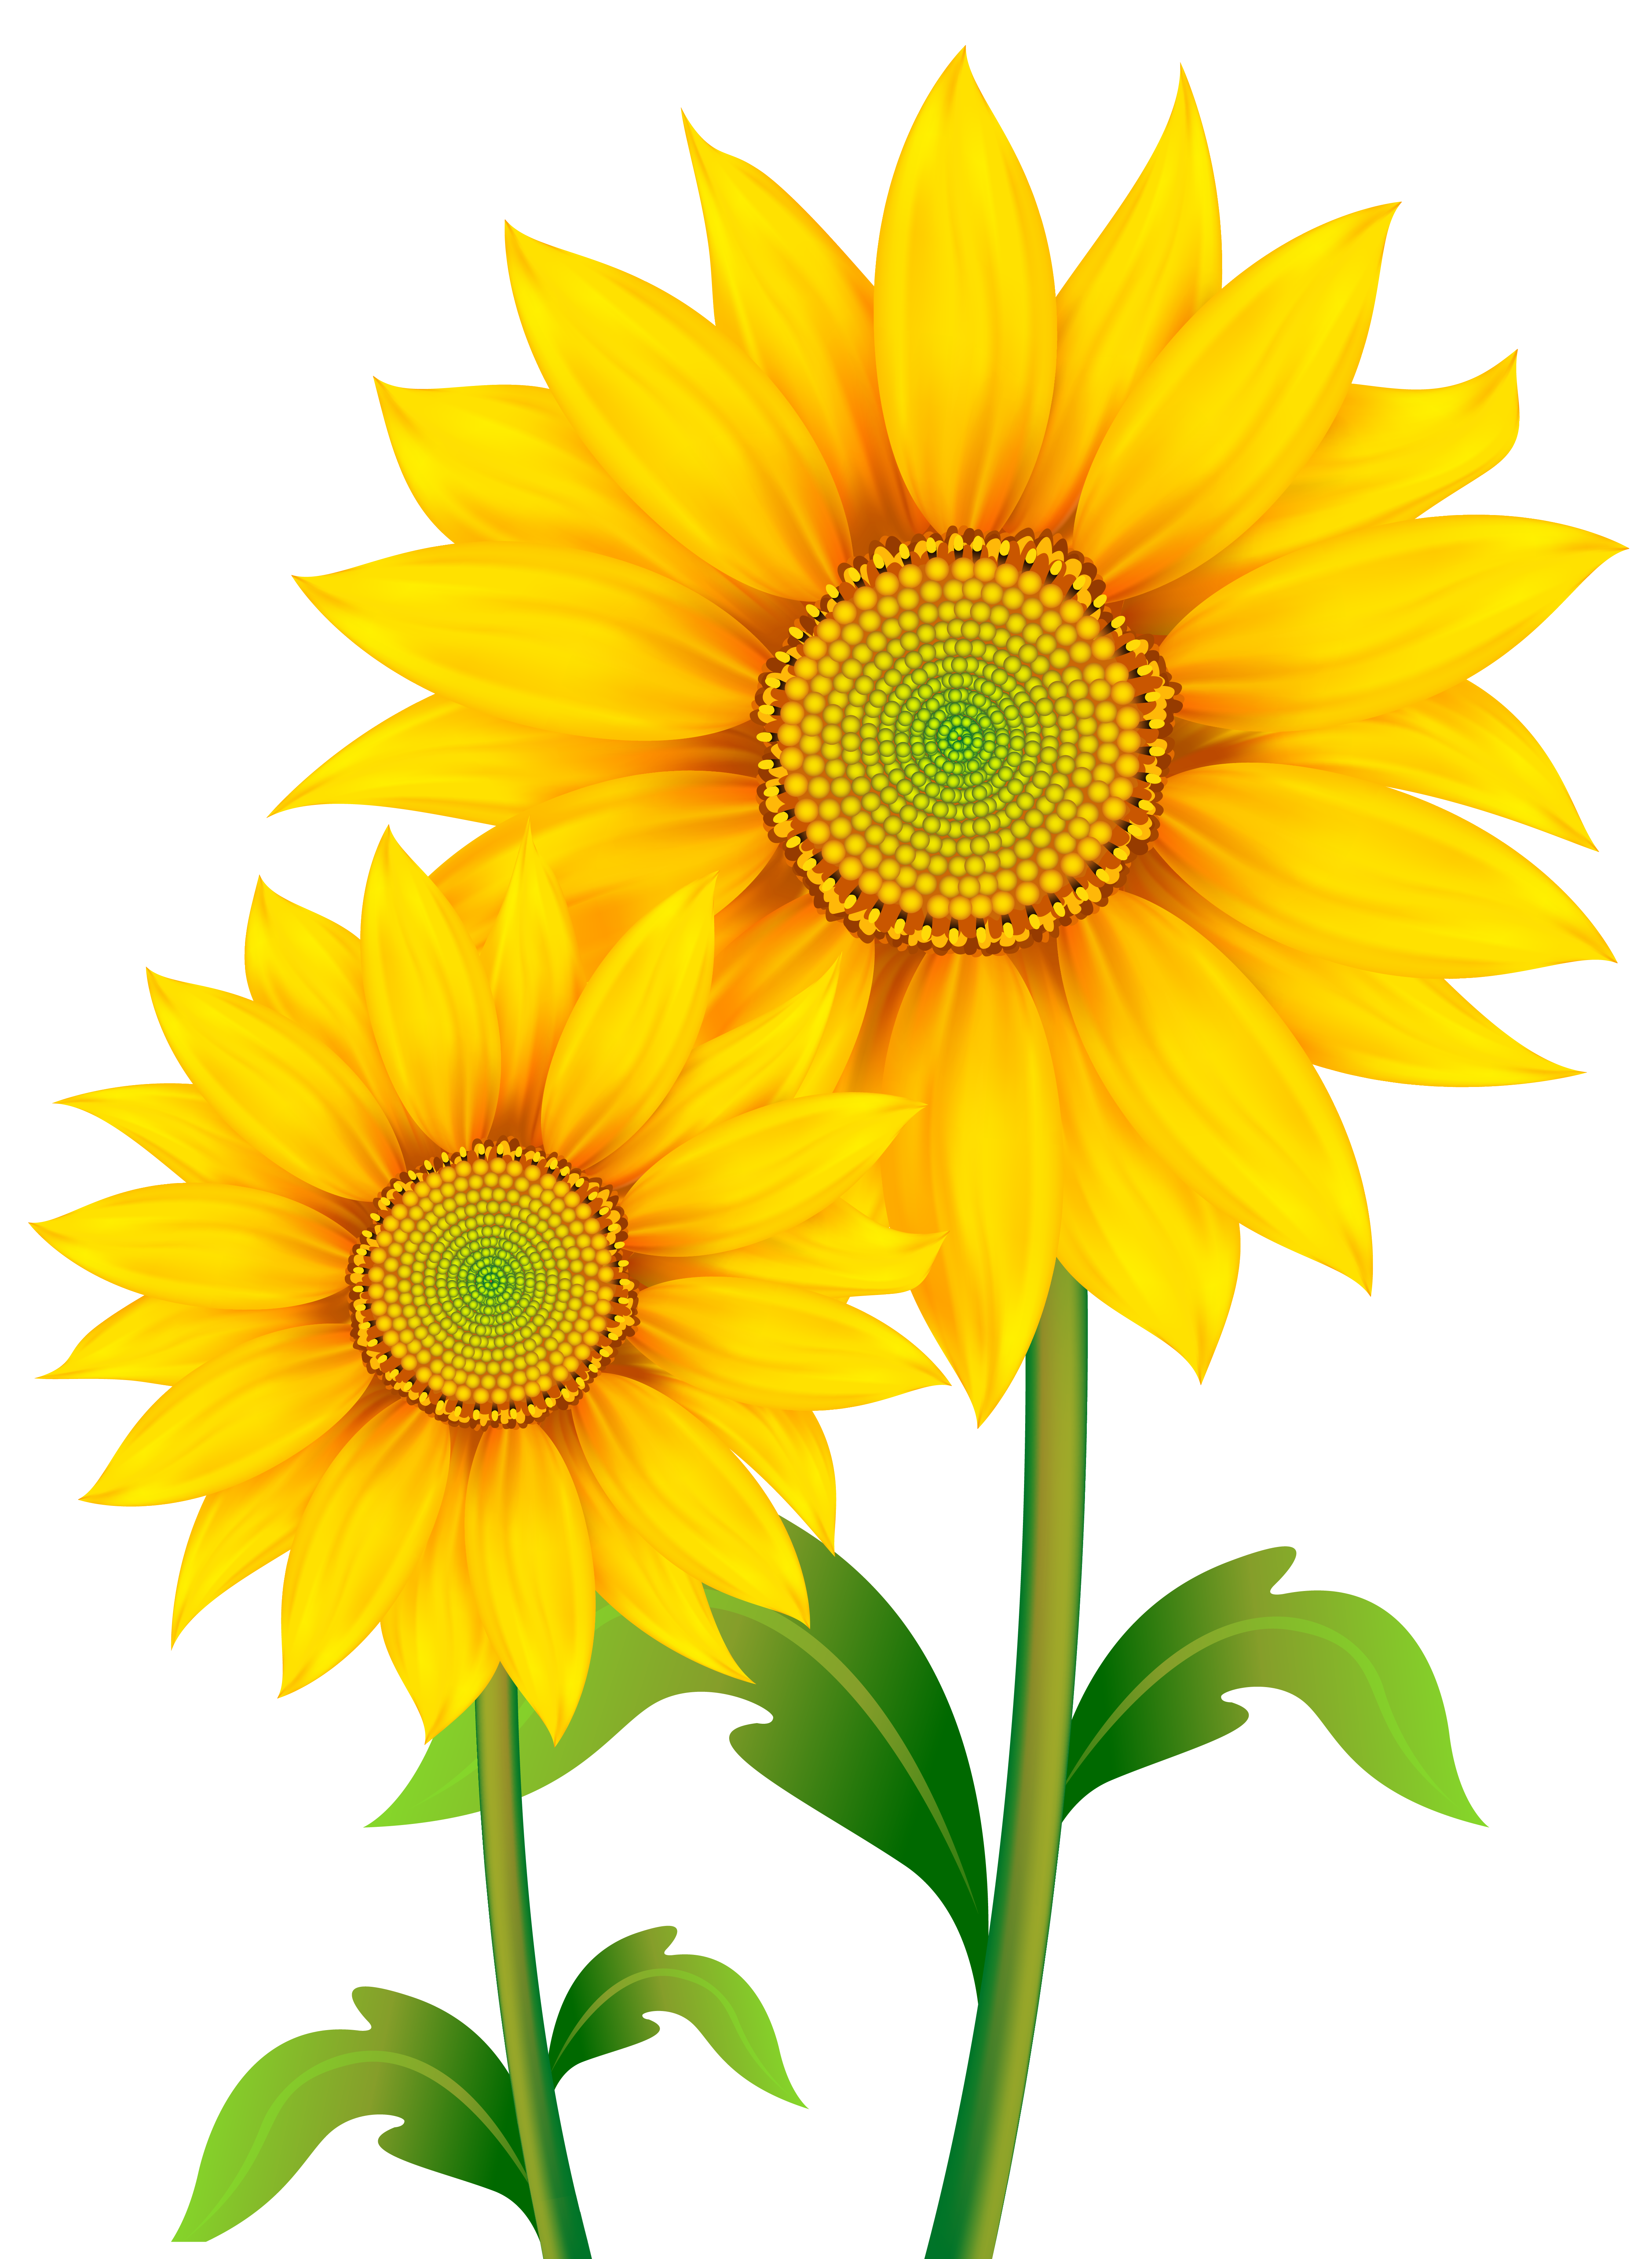 Free clipart images of sunflowers vector library library Free Sunflowers Cliparts, Download Free Clip Art, Free Clip Art on ... vector library library